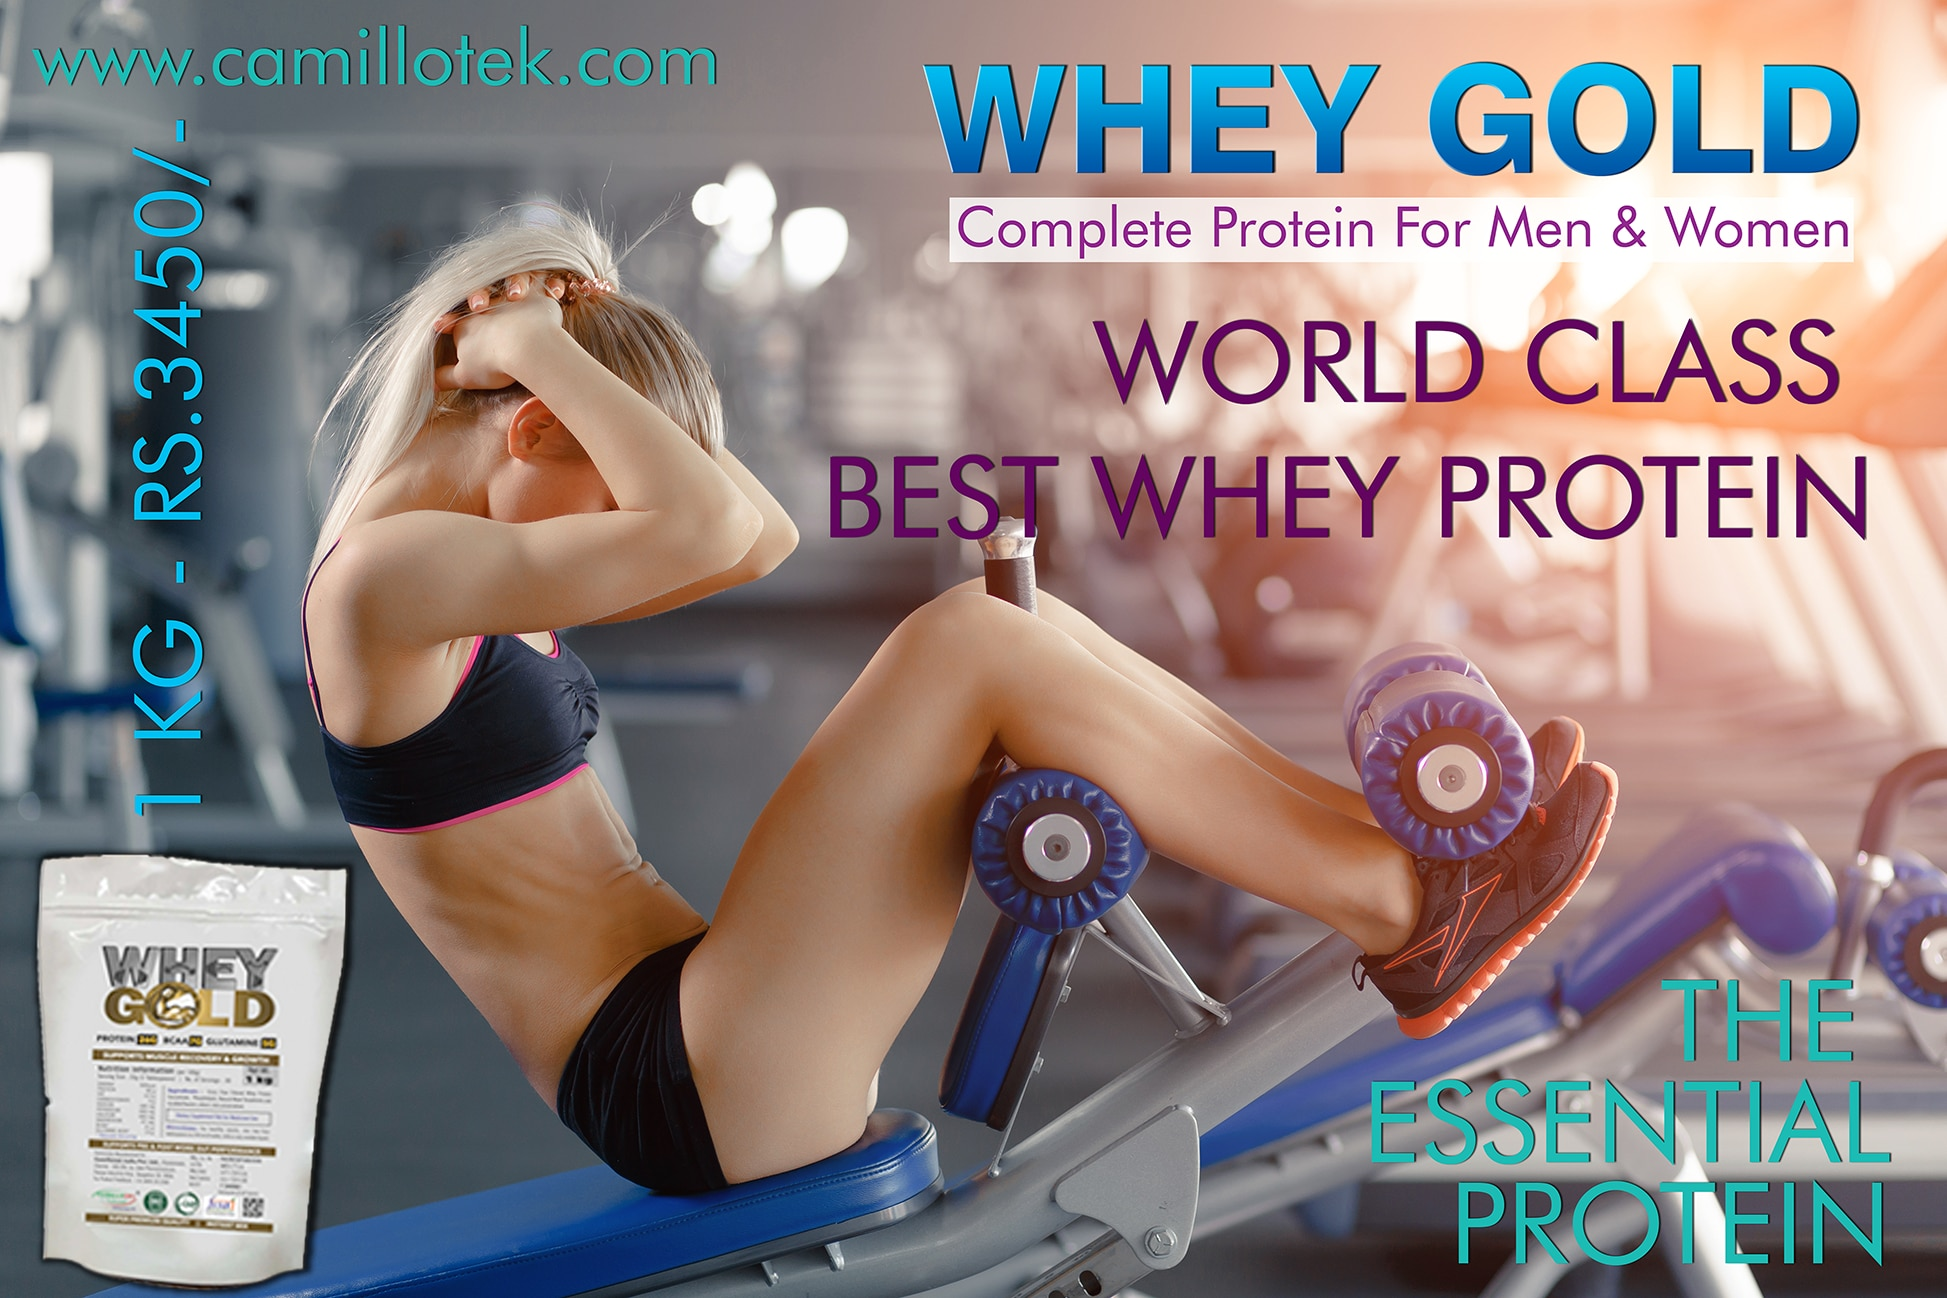 whey is the one of essential protein for all age groups of people. Whey is not only do the important role in weight loss but also a optimum nutrition whey. Whey protein natural powder, the world class best whey protein now in chennai, whey protein powder, whey protein isolate, whey standard gold, concentrated whey and whey proteinpowder supplement. whey protein supplement manufacturers, whey protein supplement suppliers, whey protein supplement exporters, wholesalers, traders in Chennai, India.